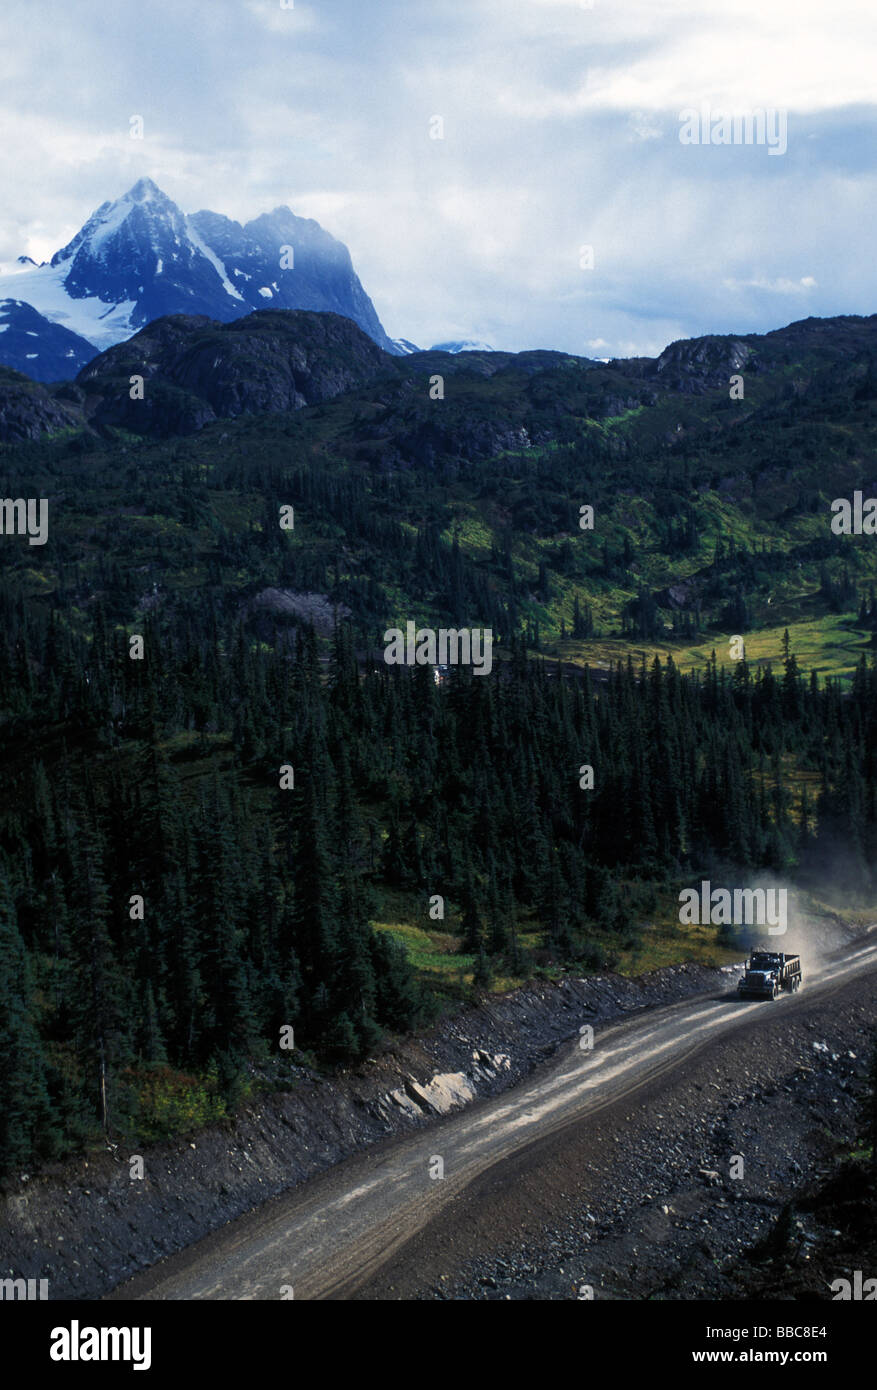 Dump truck working on new mine road, BC, Canada. - Stock Image